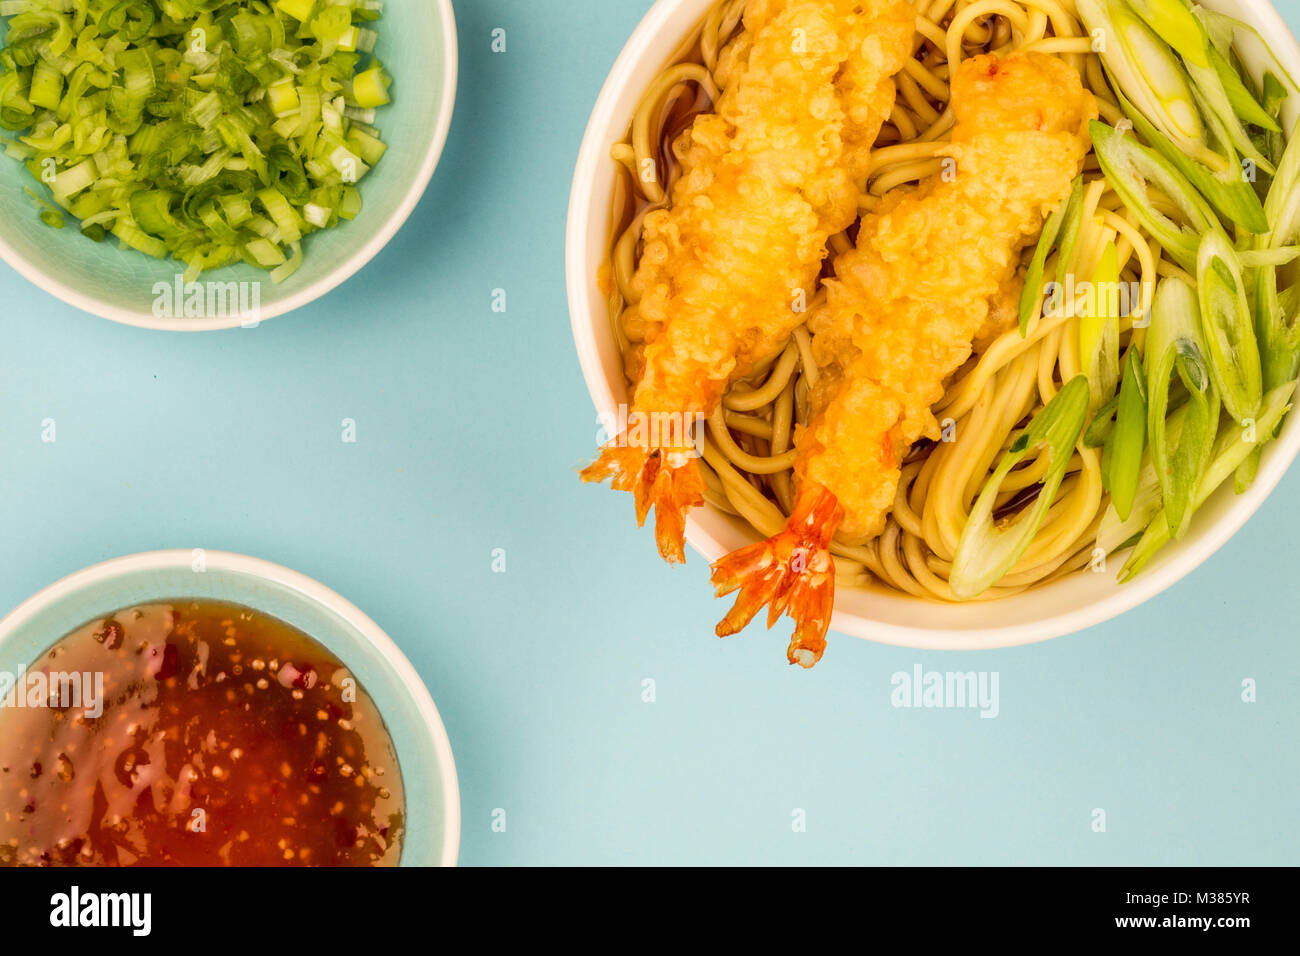 Noodle Stock Photos & Noodle Stock Images - Alamy